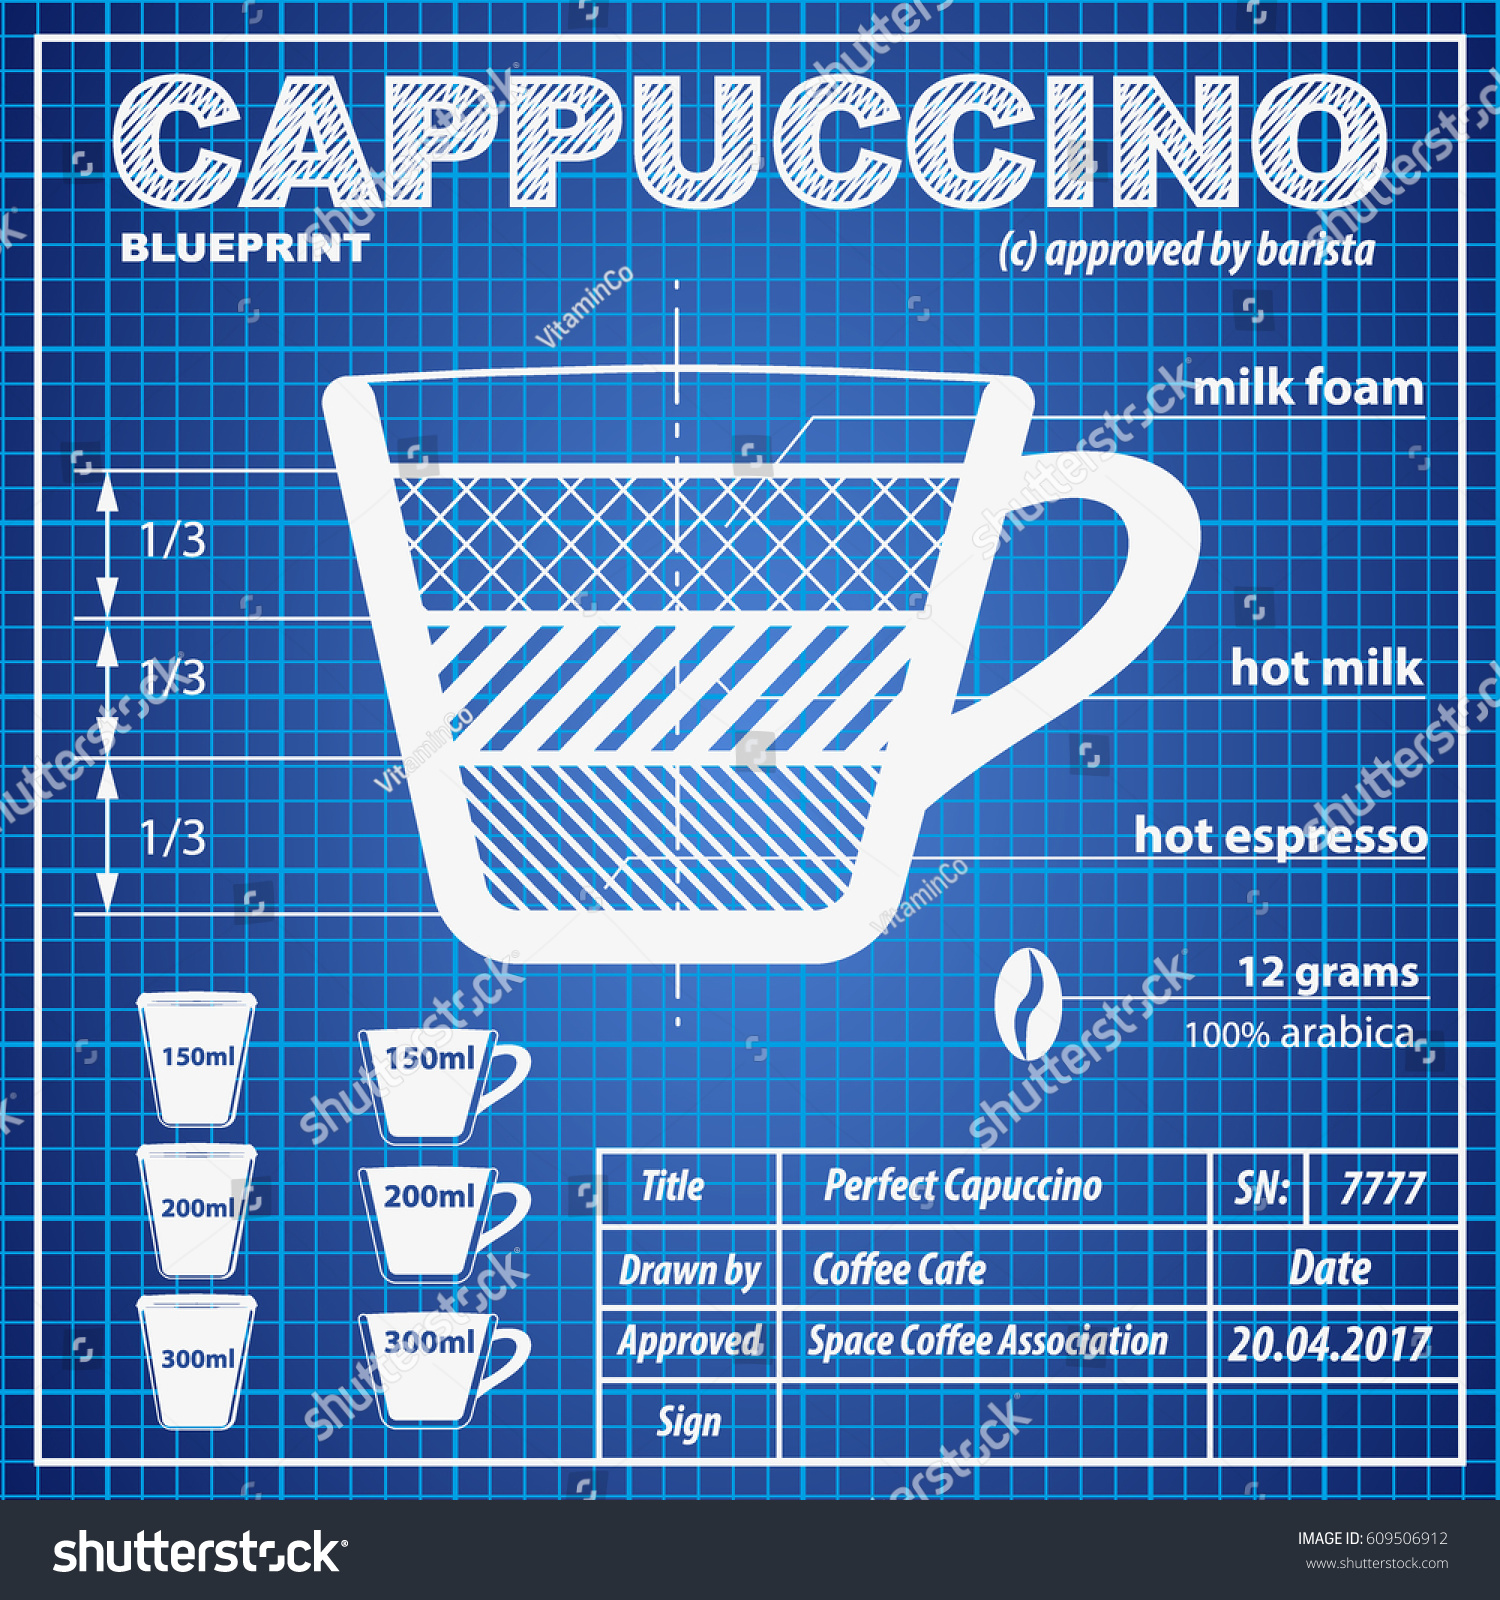 Coffee espresso composition making scheme blueprint stock vector hd coffee espresso composition and making scheme in blueprint paper drawing style print background composition of malvernweather Choice Image